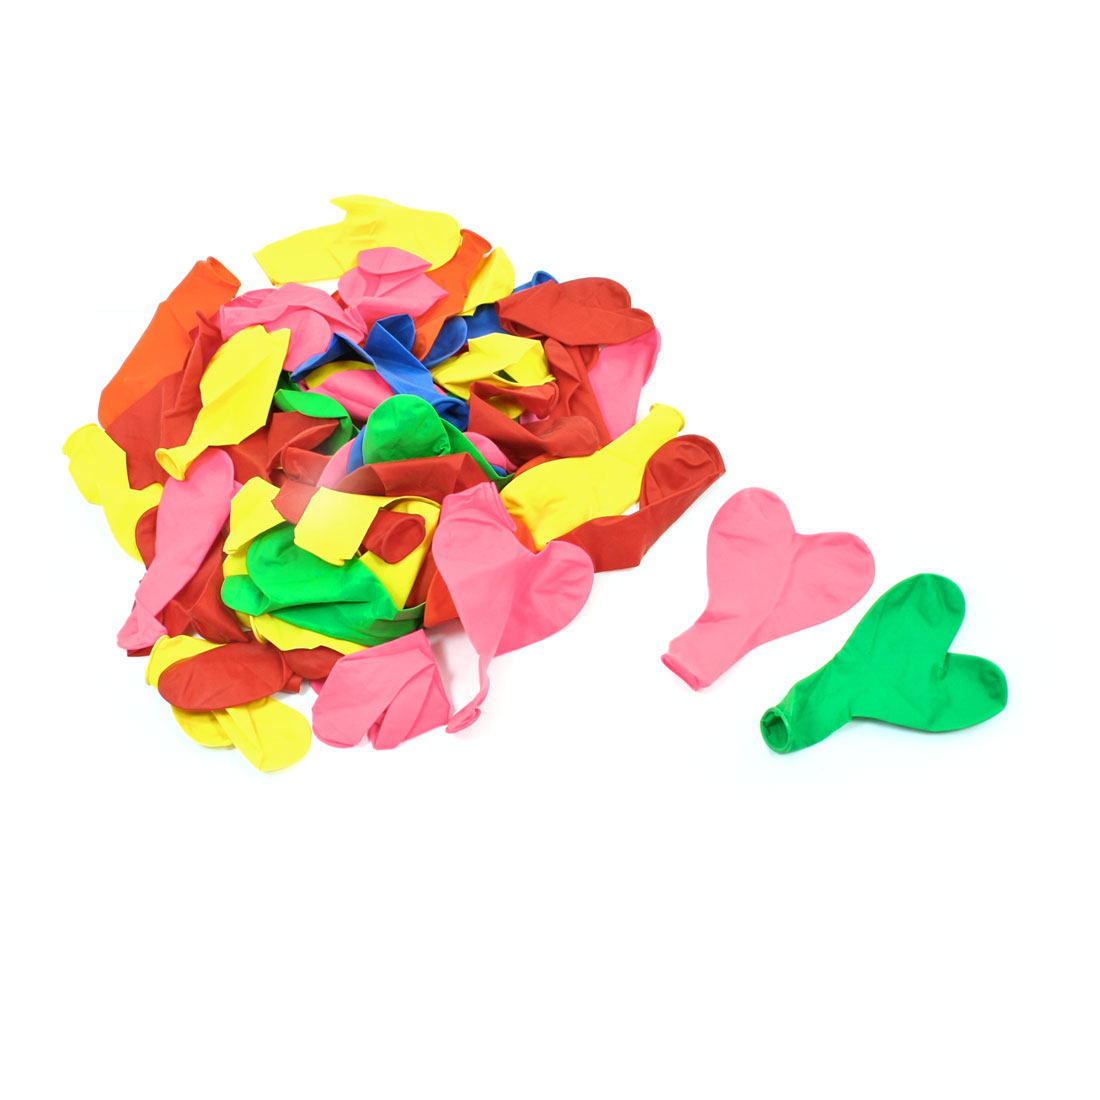 78 Pieces Colorful Heart Shaped Latex Balloons for Festival Xmas Party